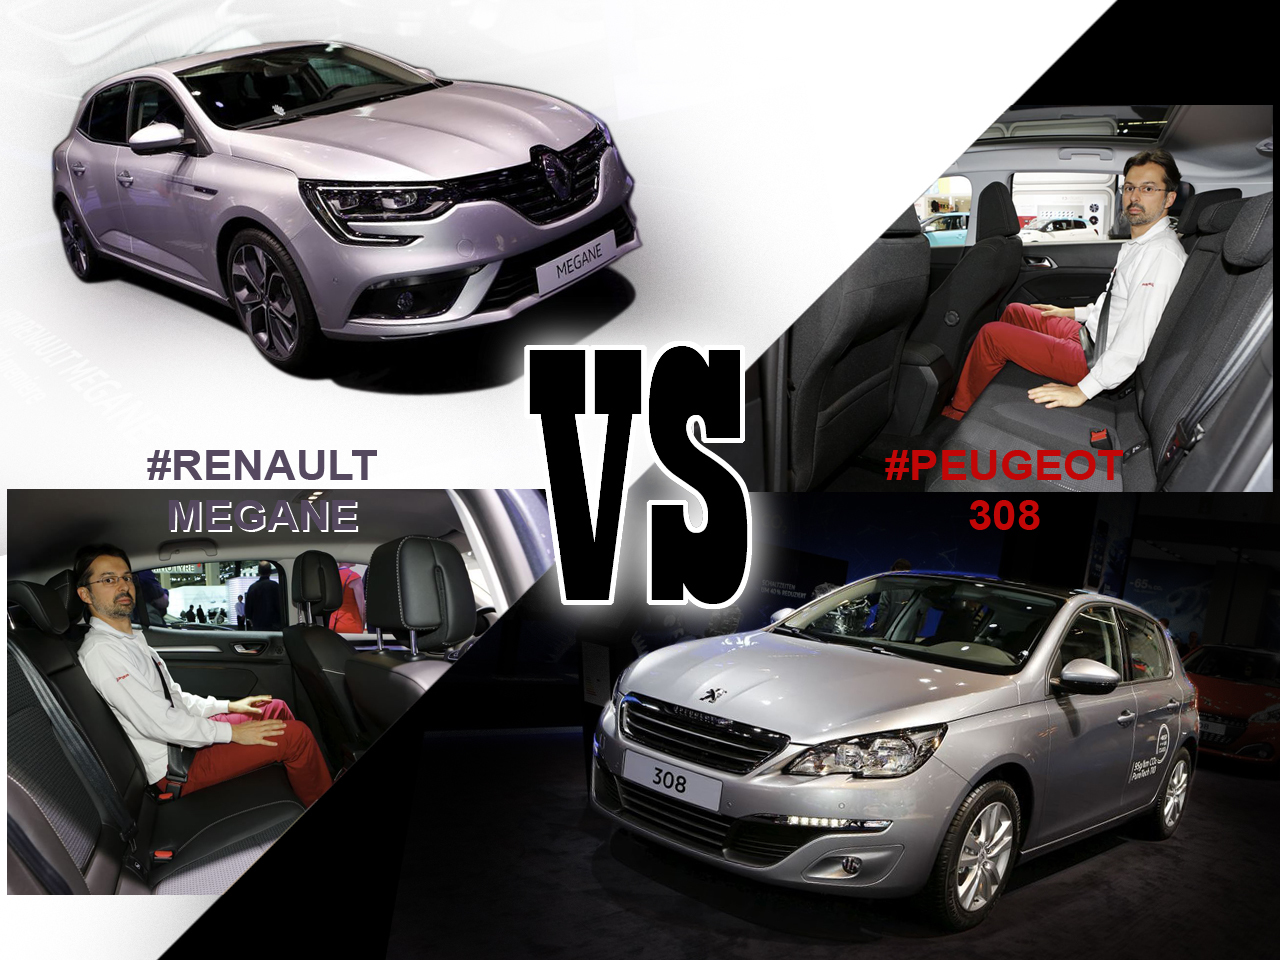 renault m gane 2016 vs peugeot 308 le match depuis francfort l 39 argus. Black Bedroom Furniture Sets. Home Design Ideas